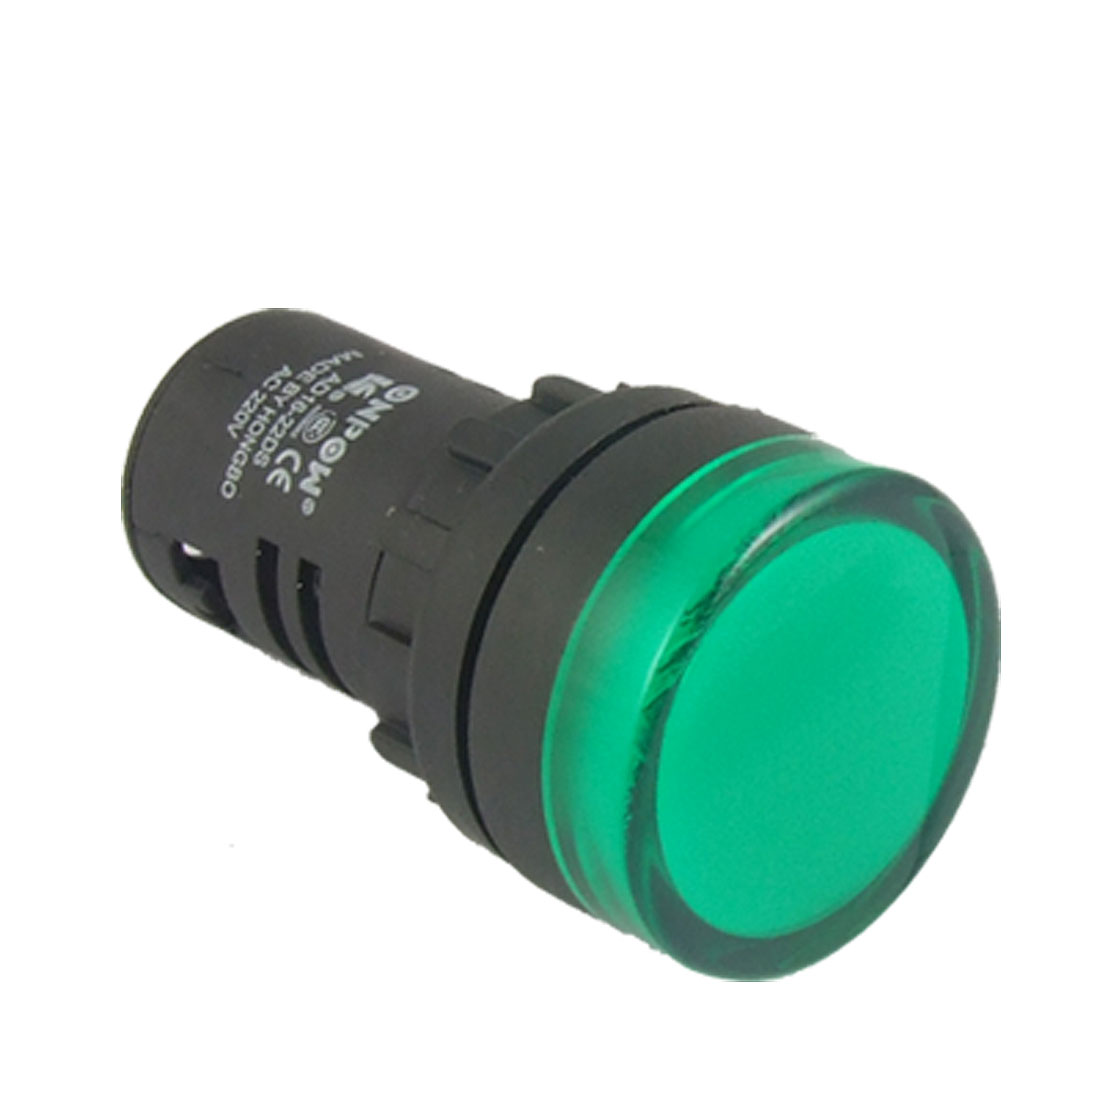 AC 220V Plastic Case Green Indicator Light Pilot Signal Lamp